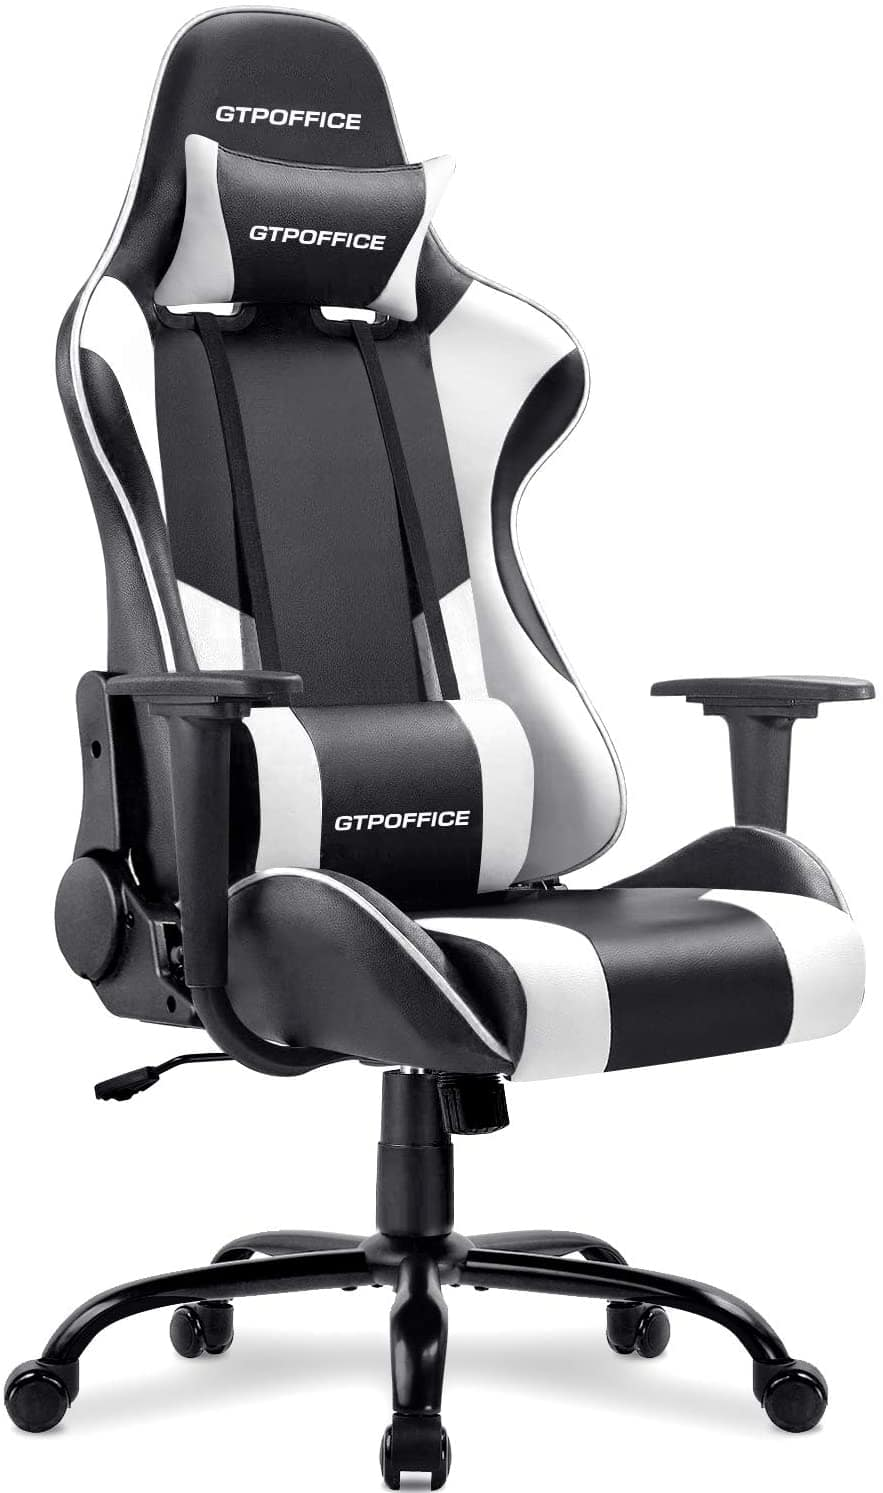 GTRACING White Gaming Chair with Massage Lumbar Support for $94.99 + $9.99 Delivery